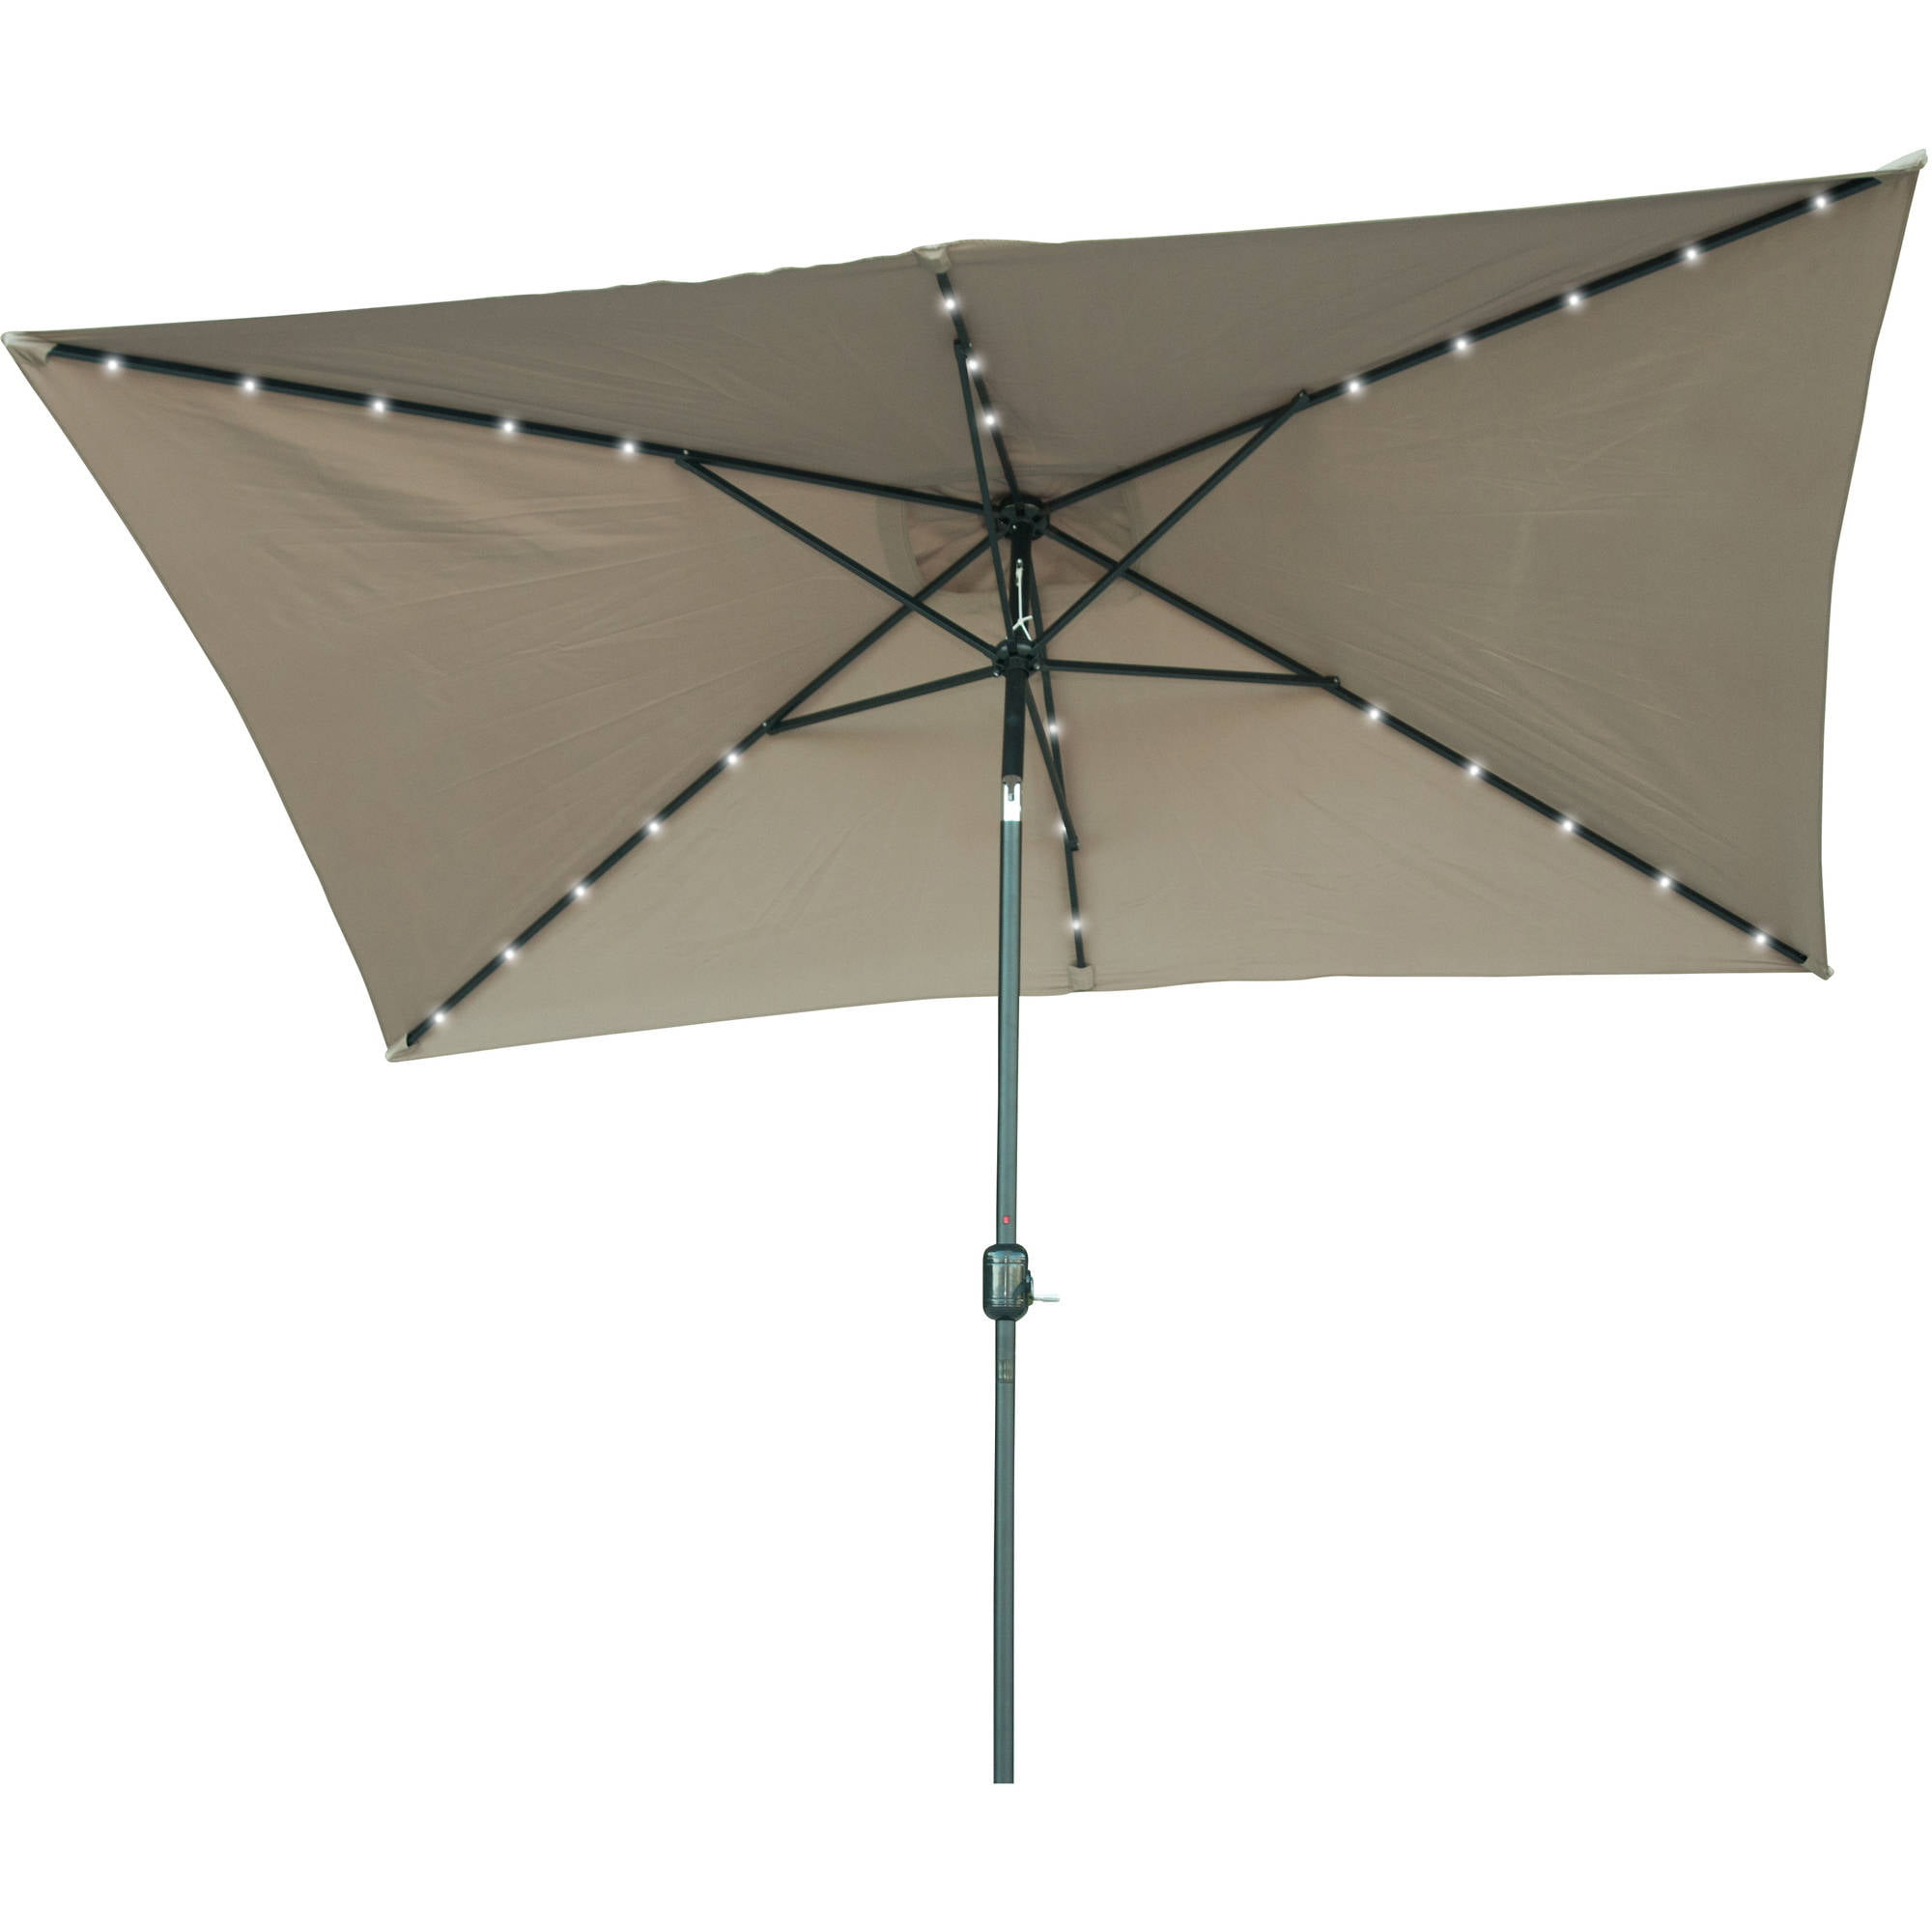 rectangular solar powered led lighted patio umbrella 10 x 65 by trademark innovations tan walmartcom - Rectangle Patio Umbrella